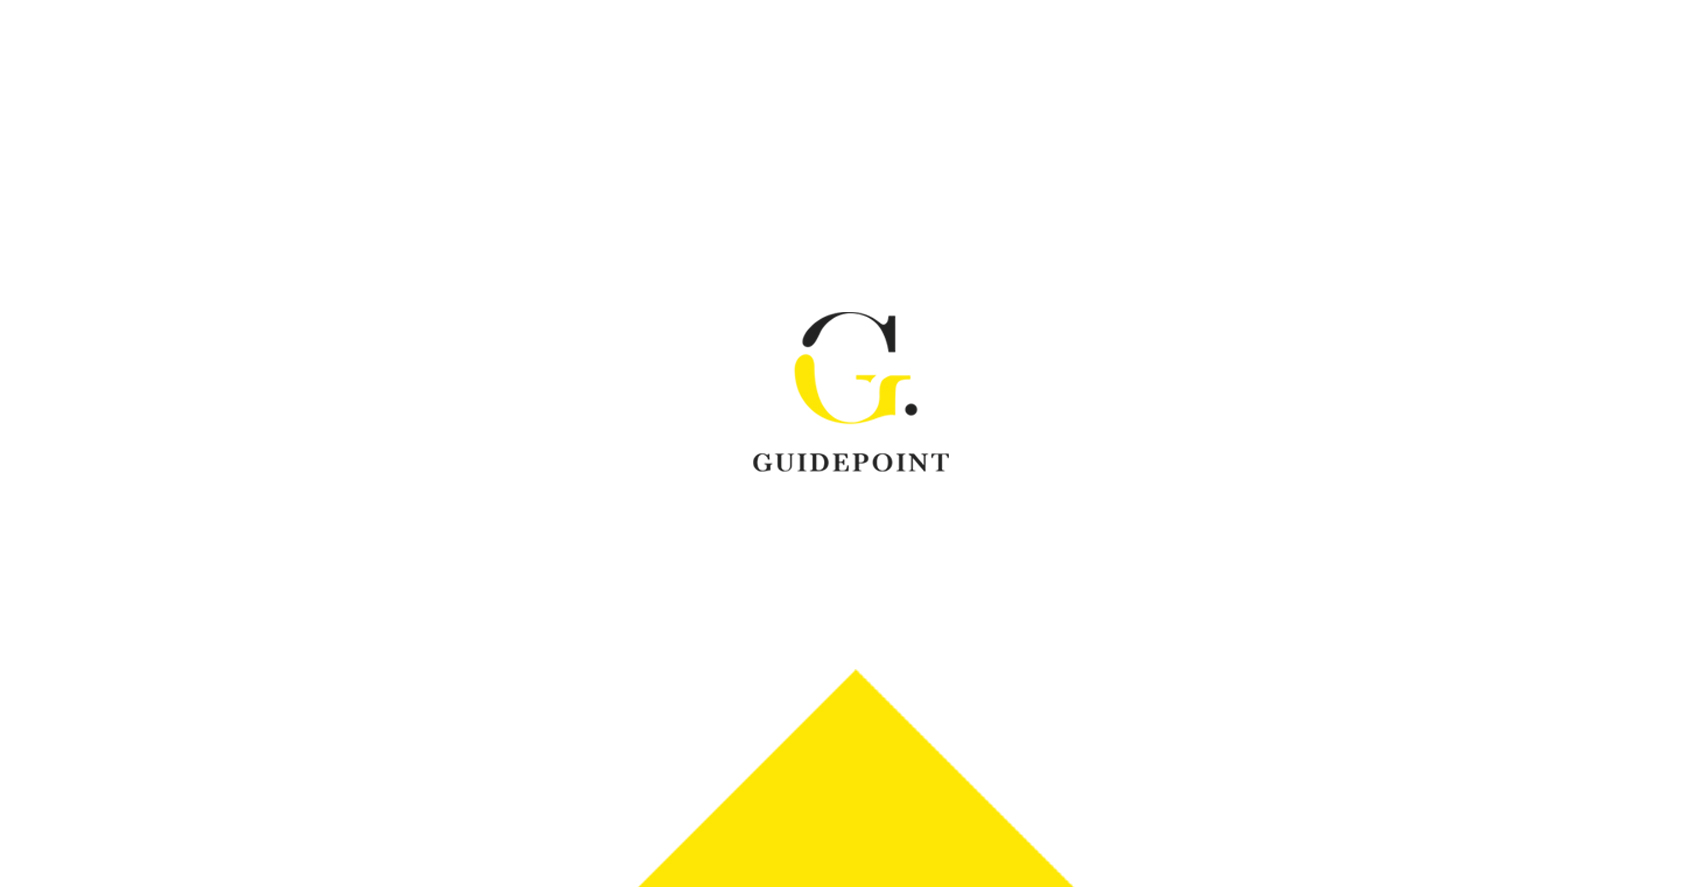 Guidepoint_01